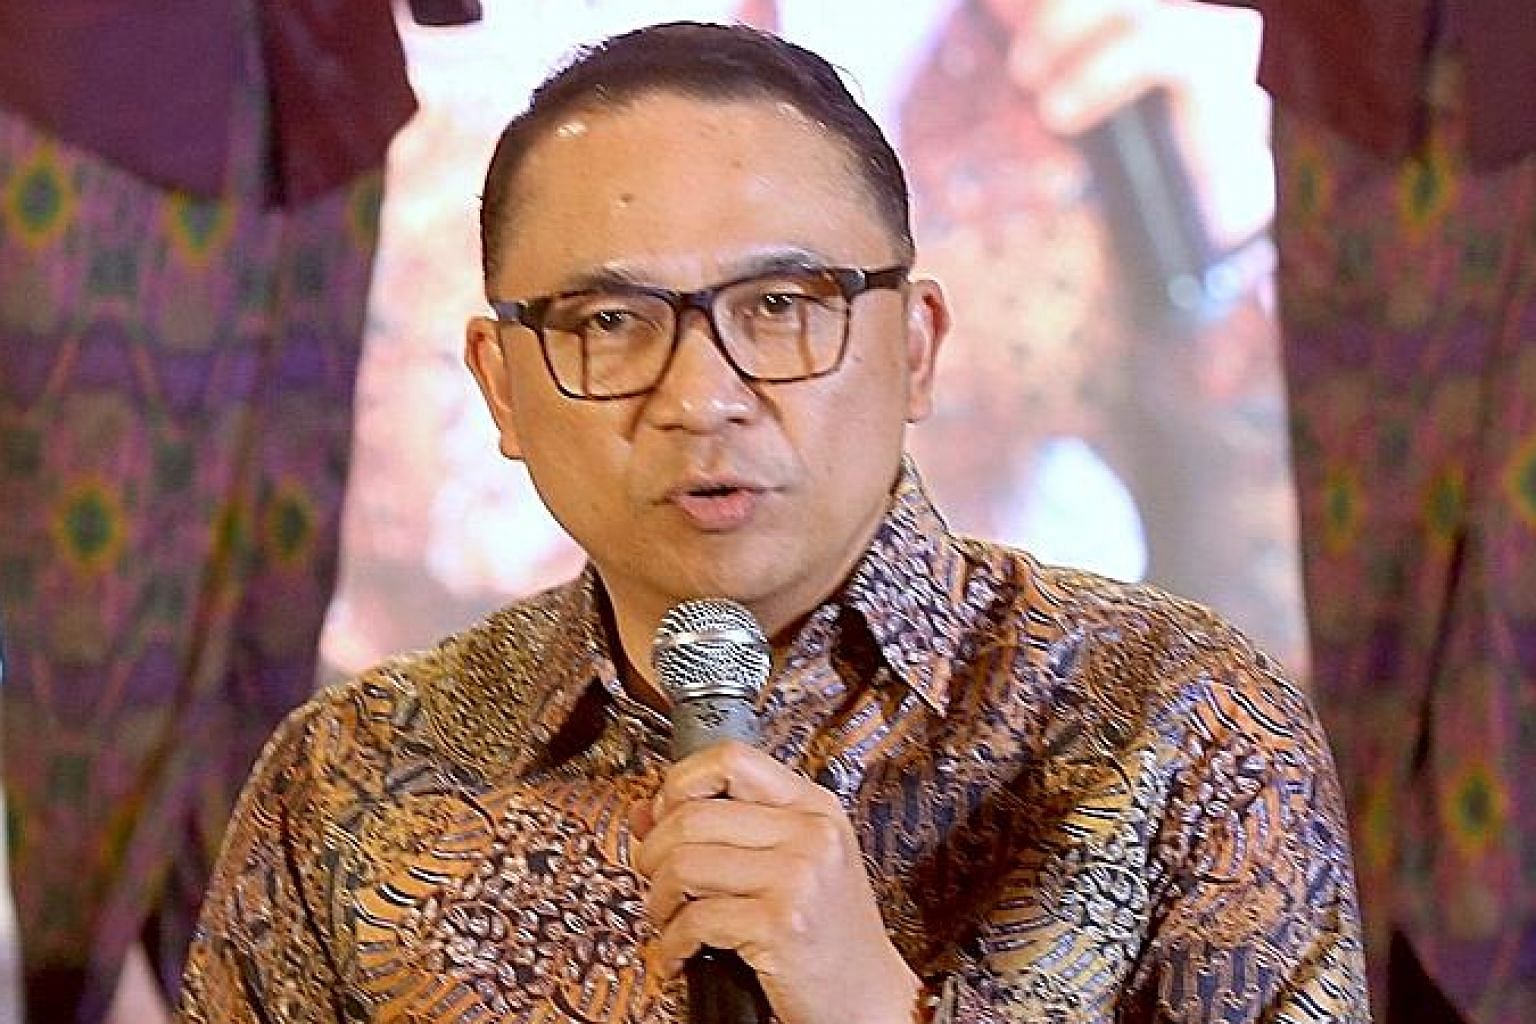 Former Garuda chief executive Ari Askhara is said to have at least one stewardess as his mistress.